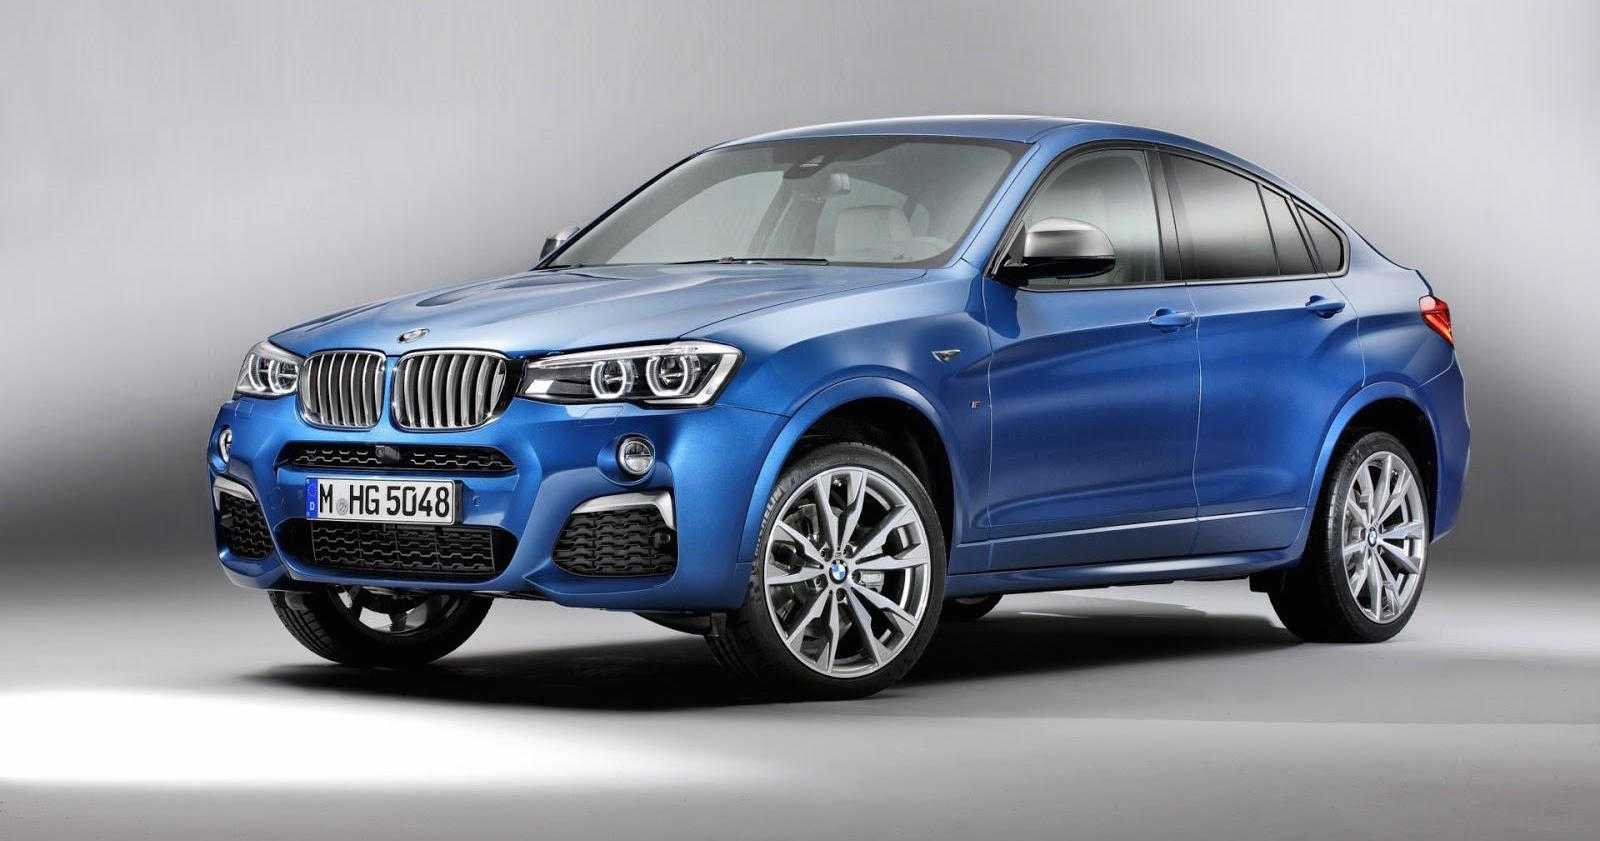 2017 BMW X4 M40i Model to Leverage on the High Performance M2 Engine